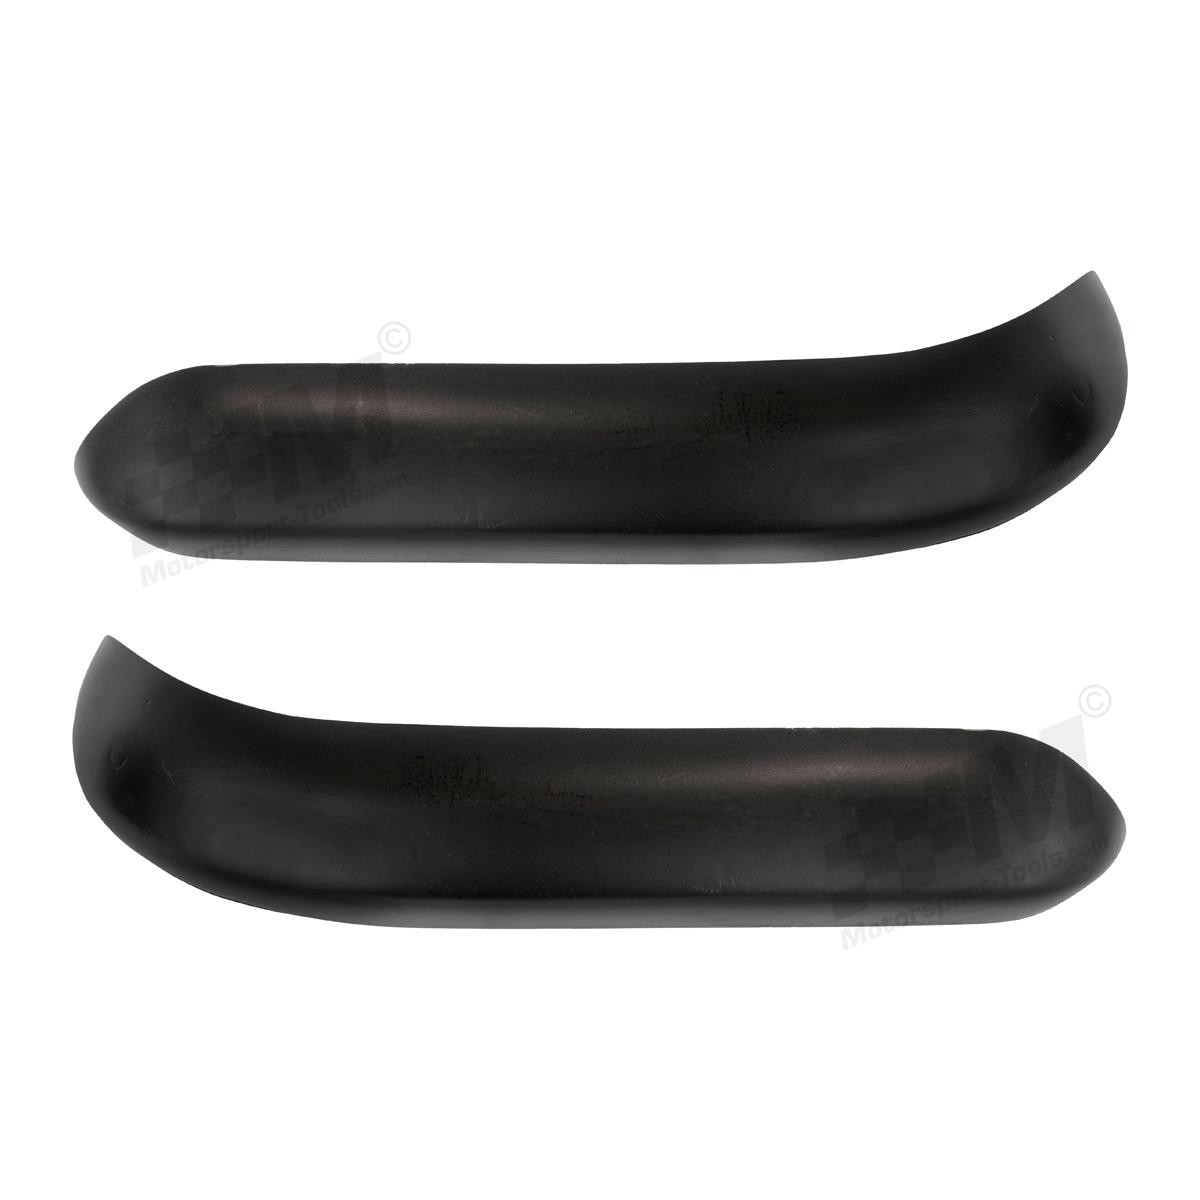 Escort Mk2 Carbon Composite Front Quarter Bumpers PAIR Carbon Fibre Glass Bumper